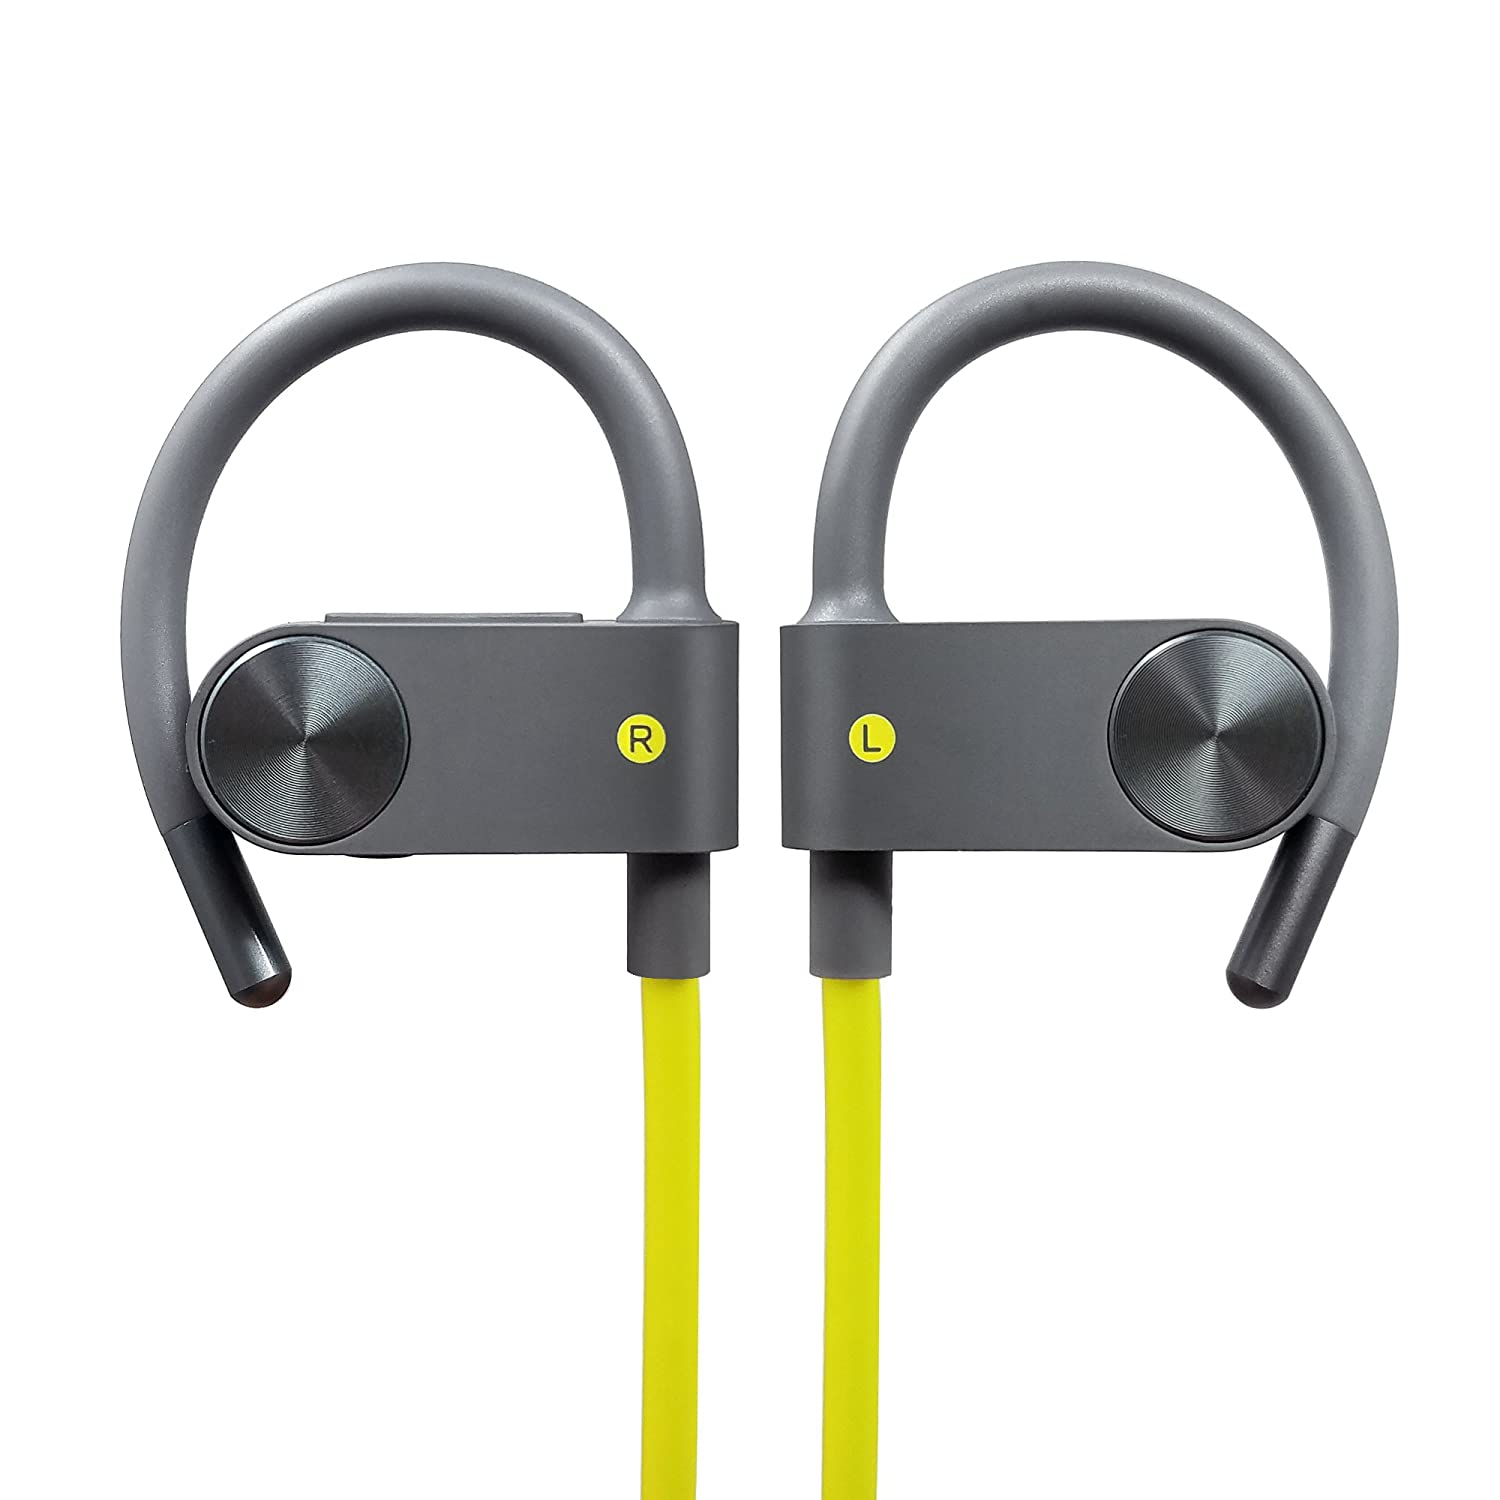 Photive BT55G Sport Bluetooth Headphones, Wireless Earbuds for Running, Gym, Workout. In-Ear Sweatproof Secure-Fit Earphones with built-in Mic and Remote in Headset PH-BTE55G